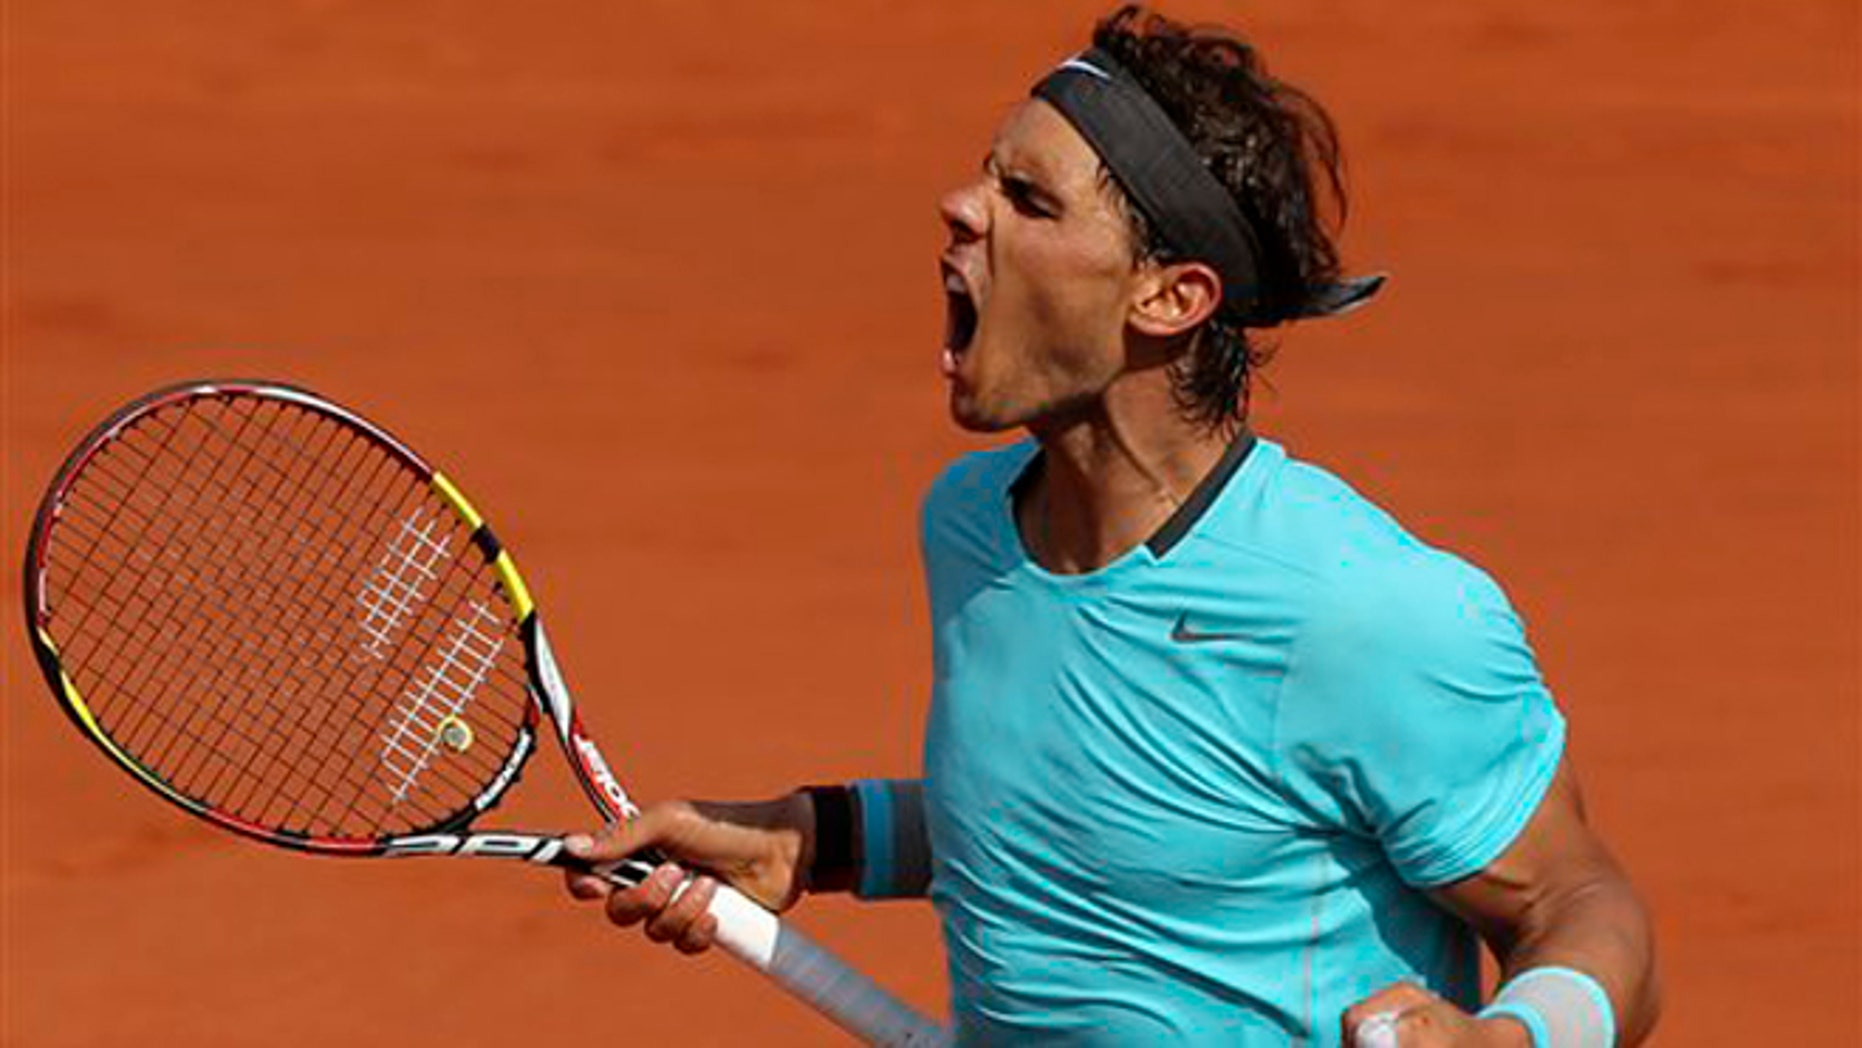 Spain's Rafael Nadal reacts as he wins  the second set against Serbia's Novak Djokovic during their final match of  the French Open tennis tournament at the Roland Garros stadium, in Paris, France, Sunday, June 8, 2014. (AP Photo/Thibault Camus)